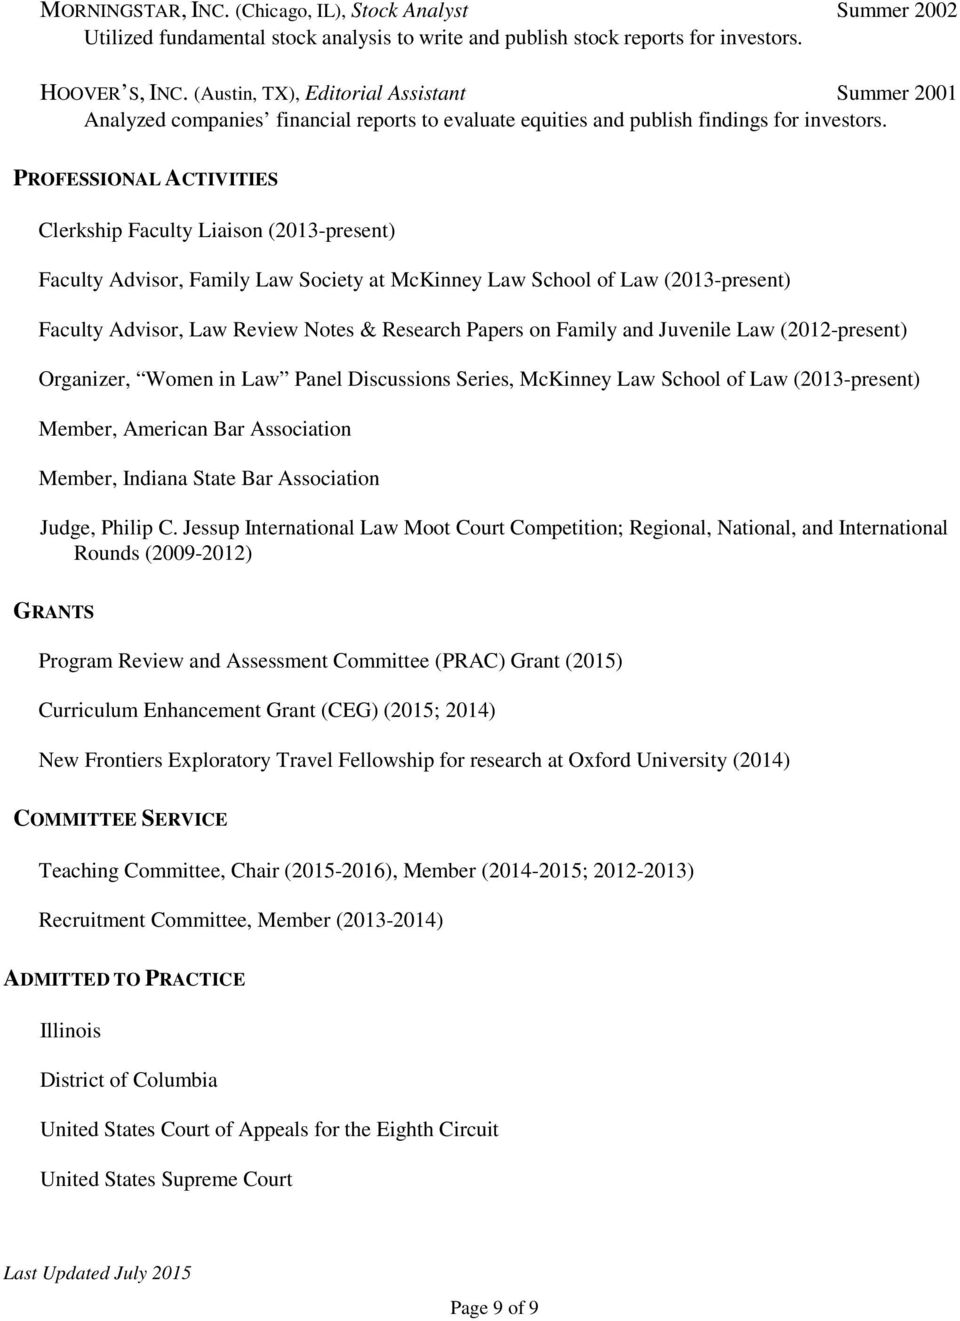 PROFESSIONAL ACTIVITIES Clerkship Faculty Liaison (2013-present) Faculty Advisor, Family Law Society at McKinney Law School of Law (2013-present) Faculty Advisor, Law Review Notes & Research Papers